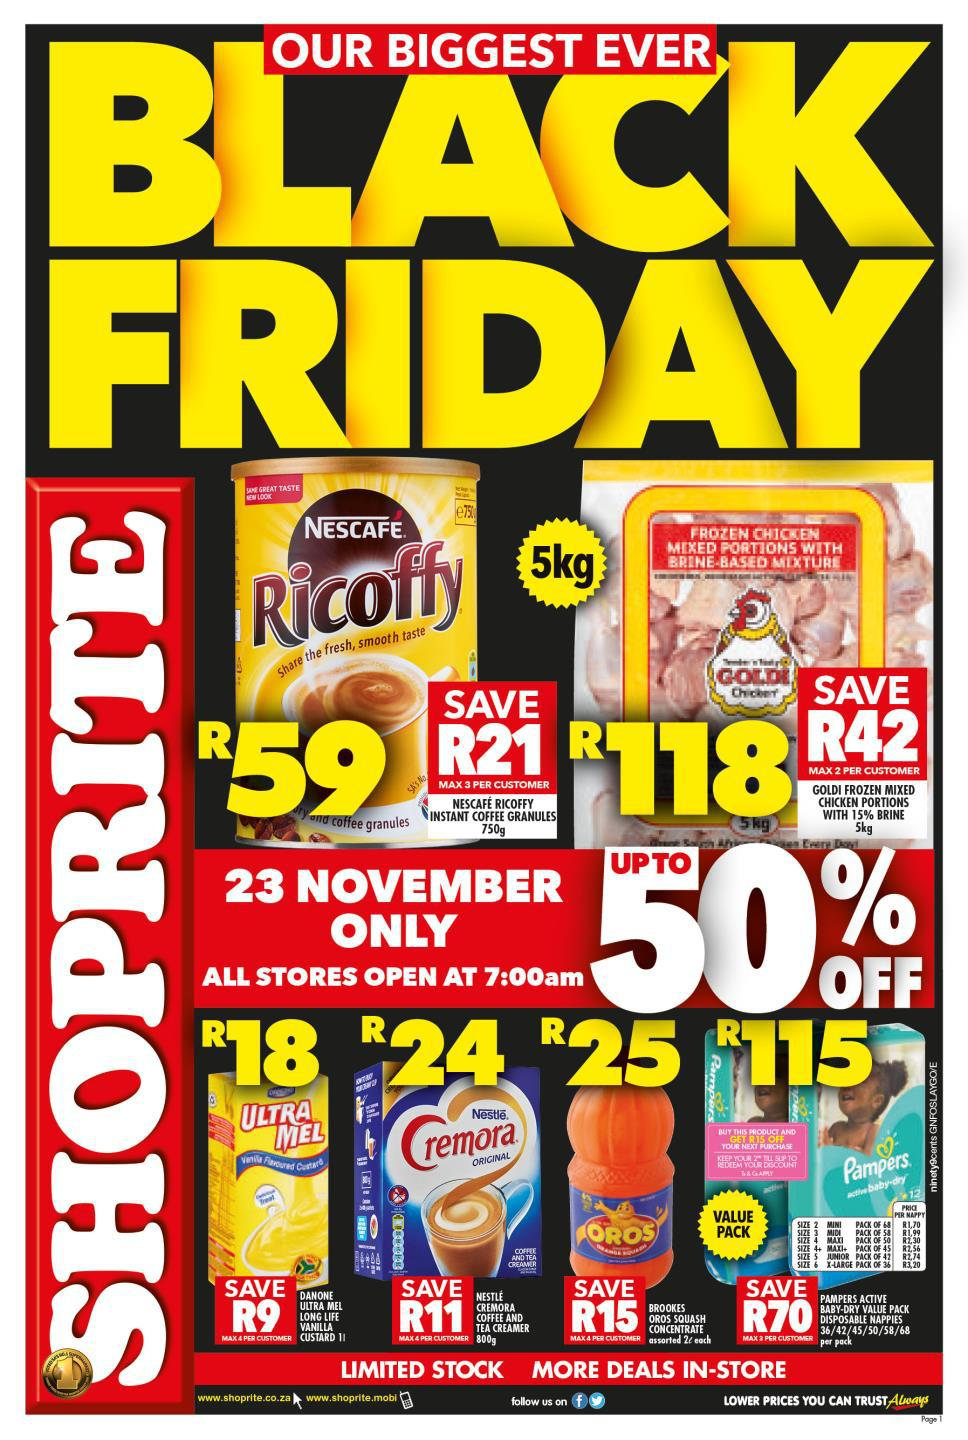 Black Friday Specials Shoprite Black Friday 2018 Deals Specials